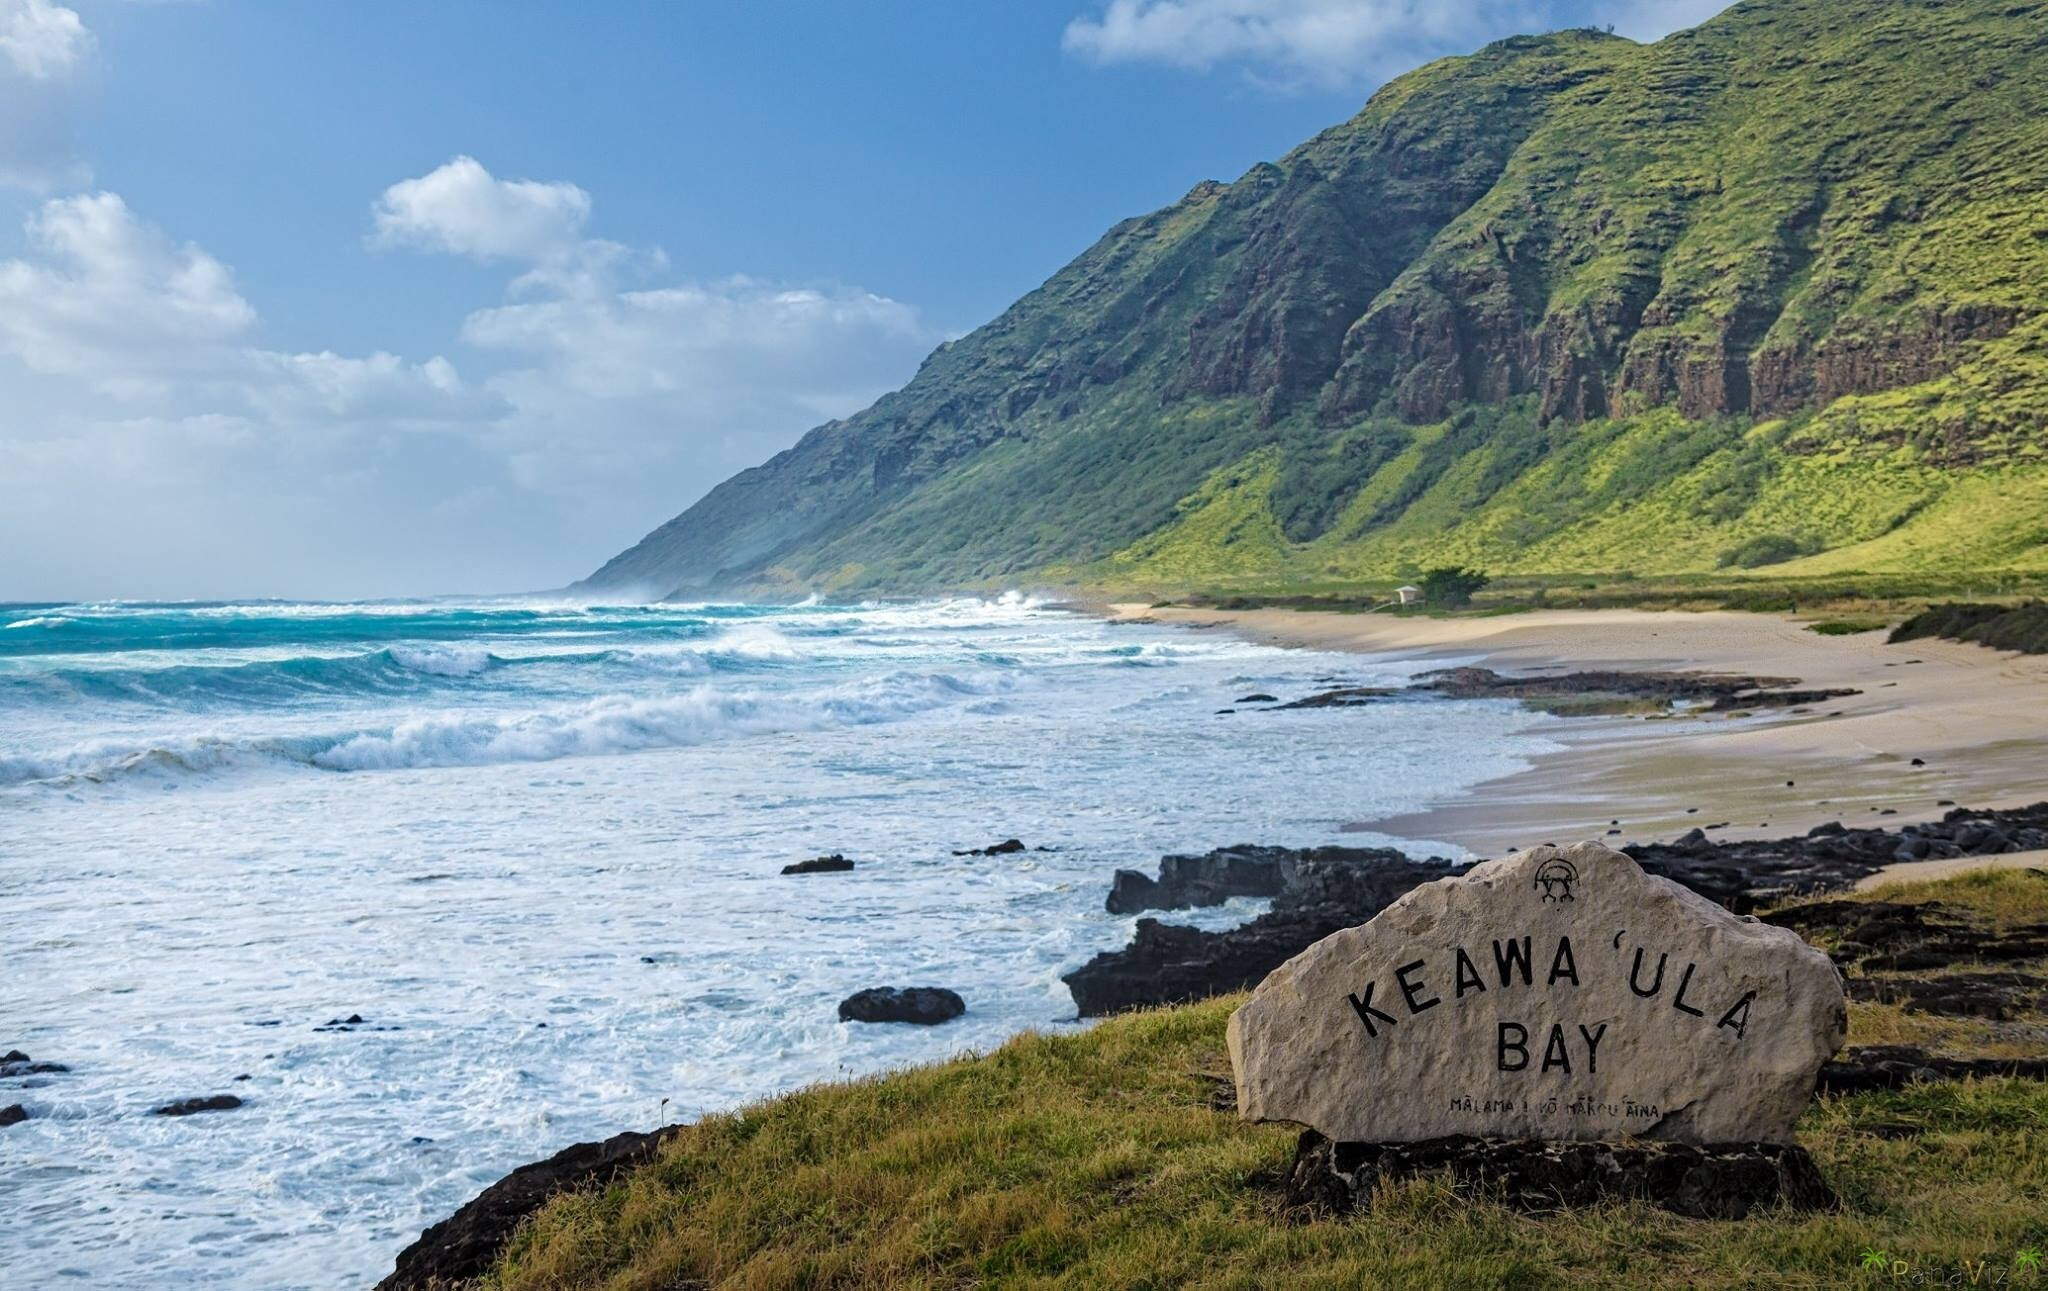 High surf at Keawa'ula Bay by PanaViz